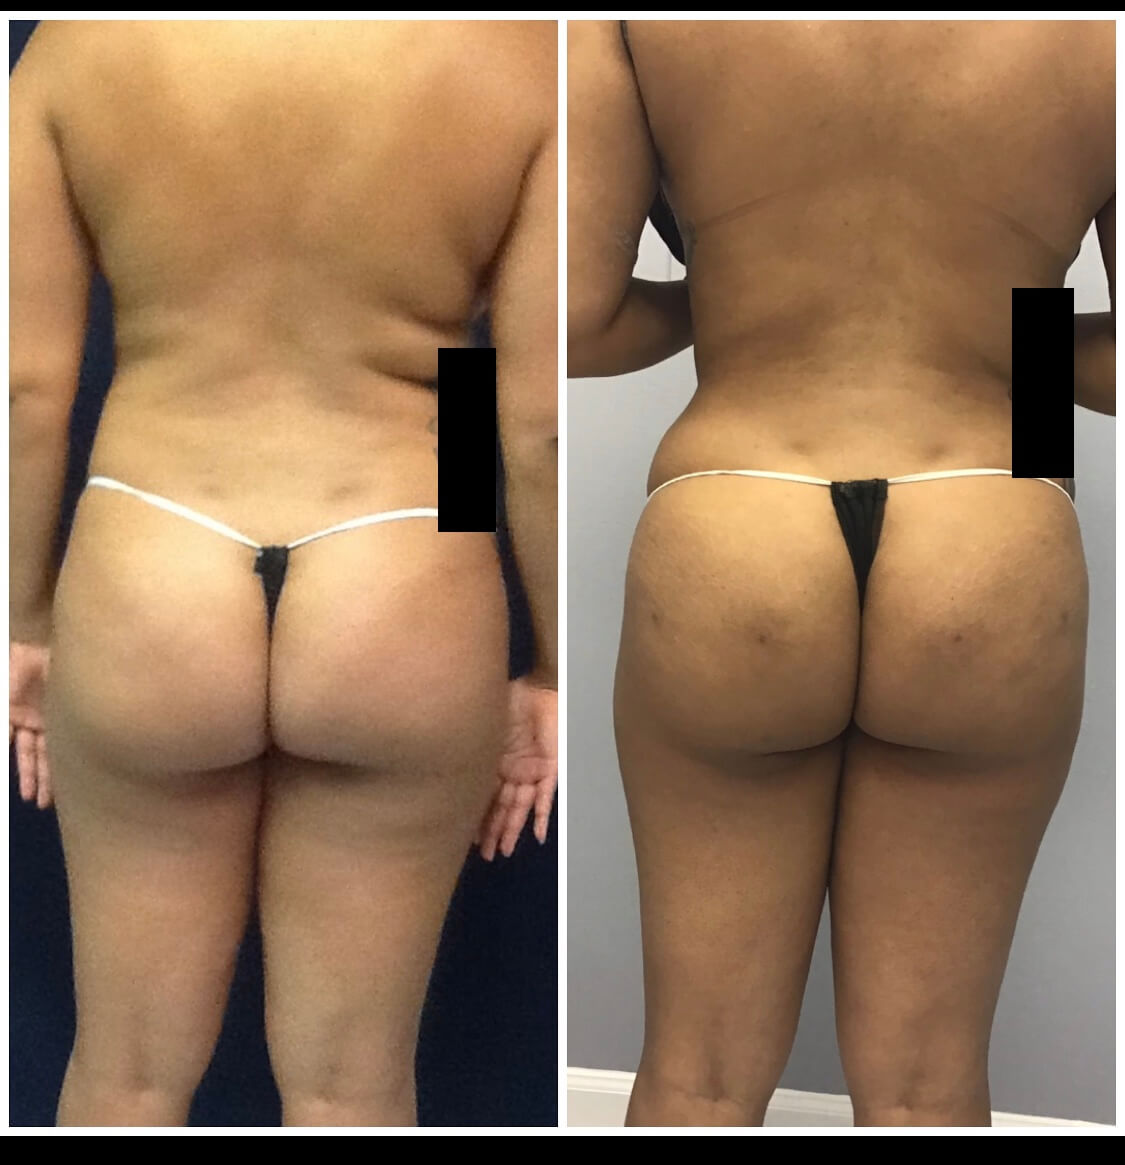 Before and After 4 weeks of receiving Liposuction and Fat Transfer/Brazilian Butt Lift